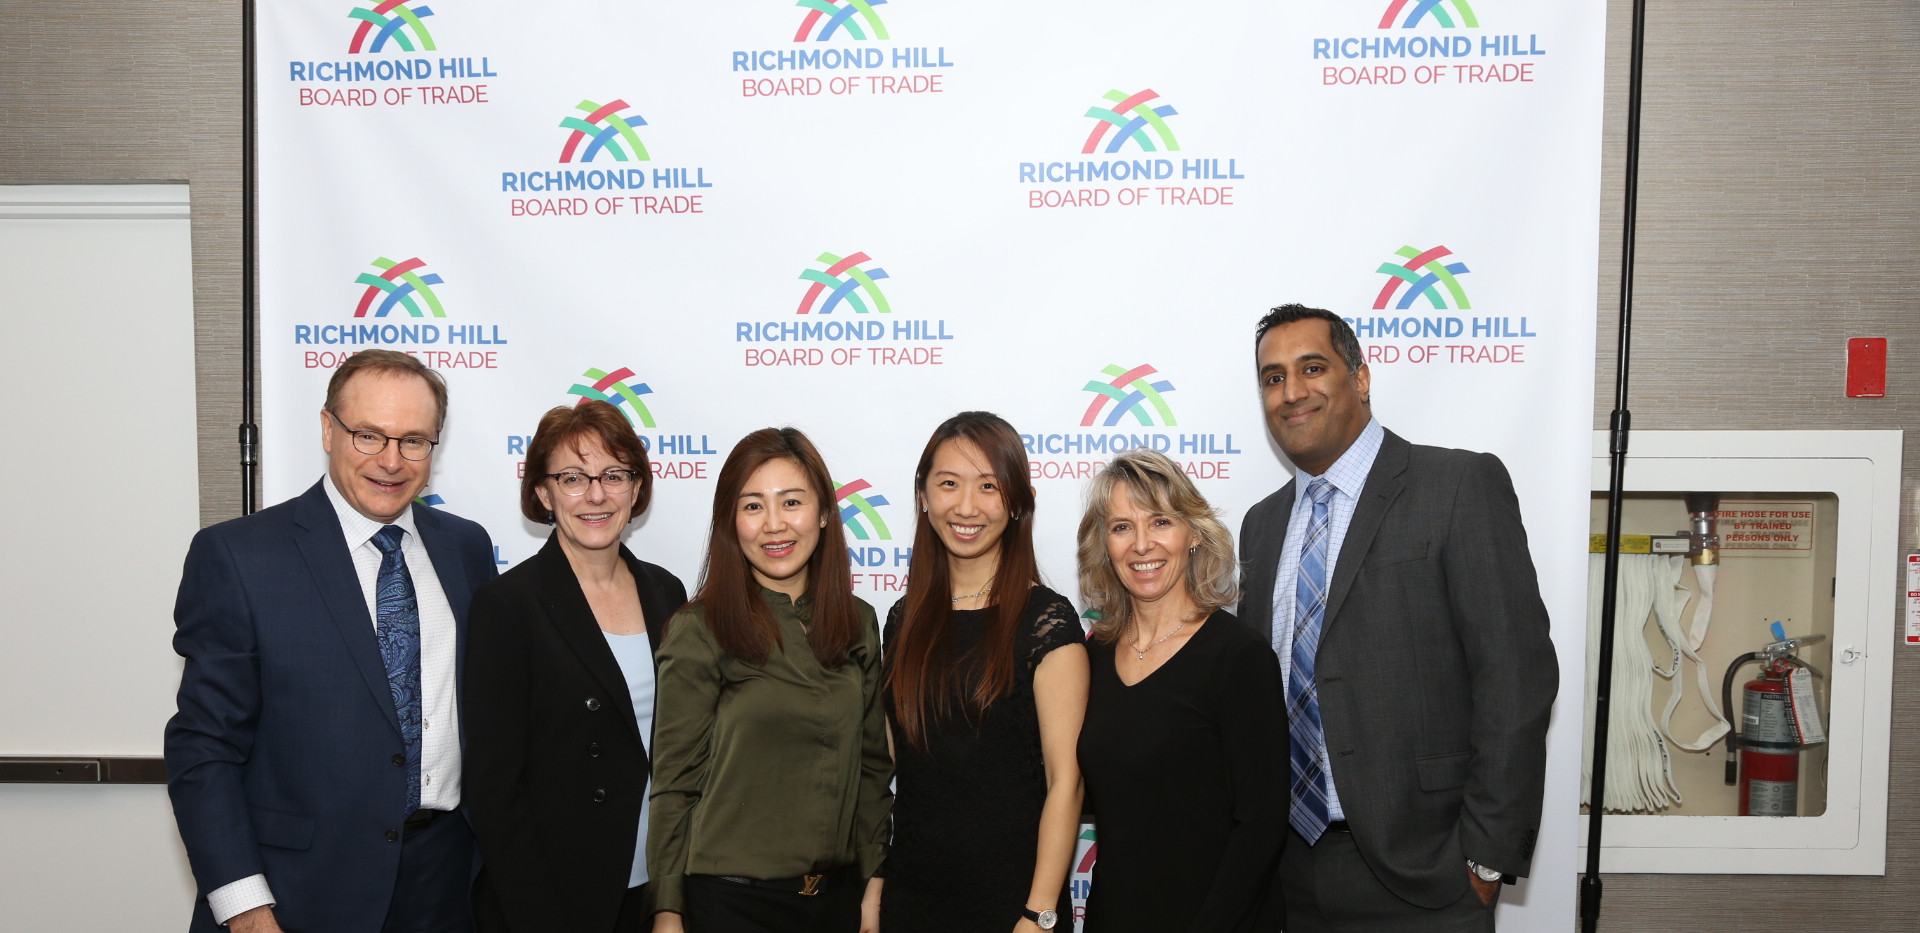 RICHMOND HILL BOARD OF TRADE Business Achievement Awards 2020